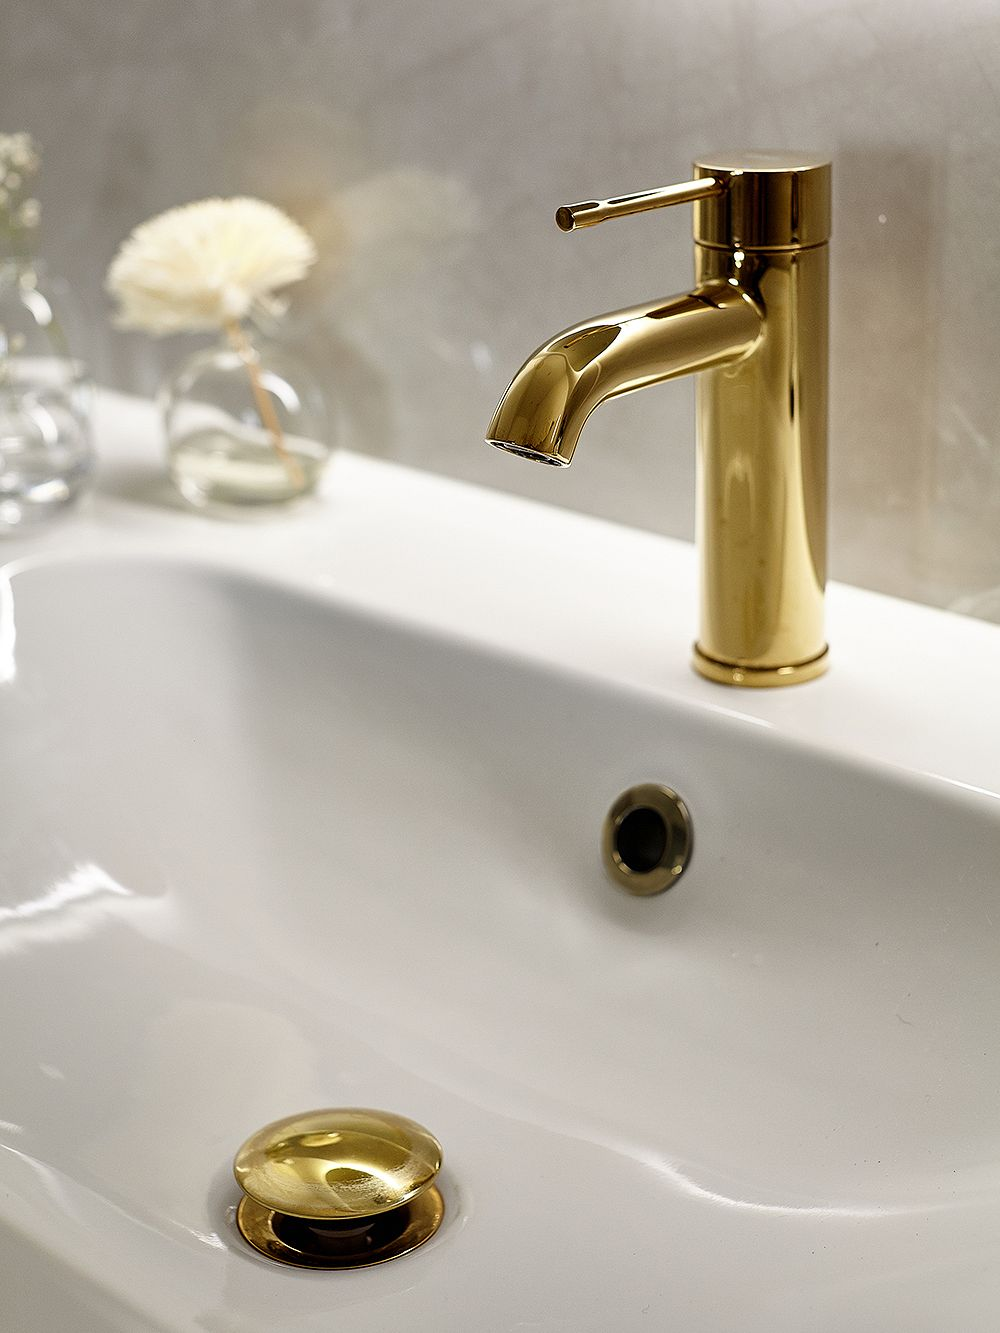 Brass faucet by Grohe